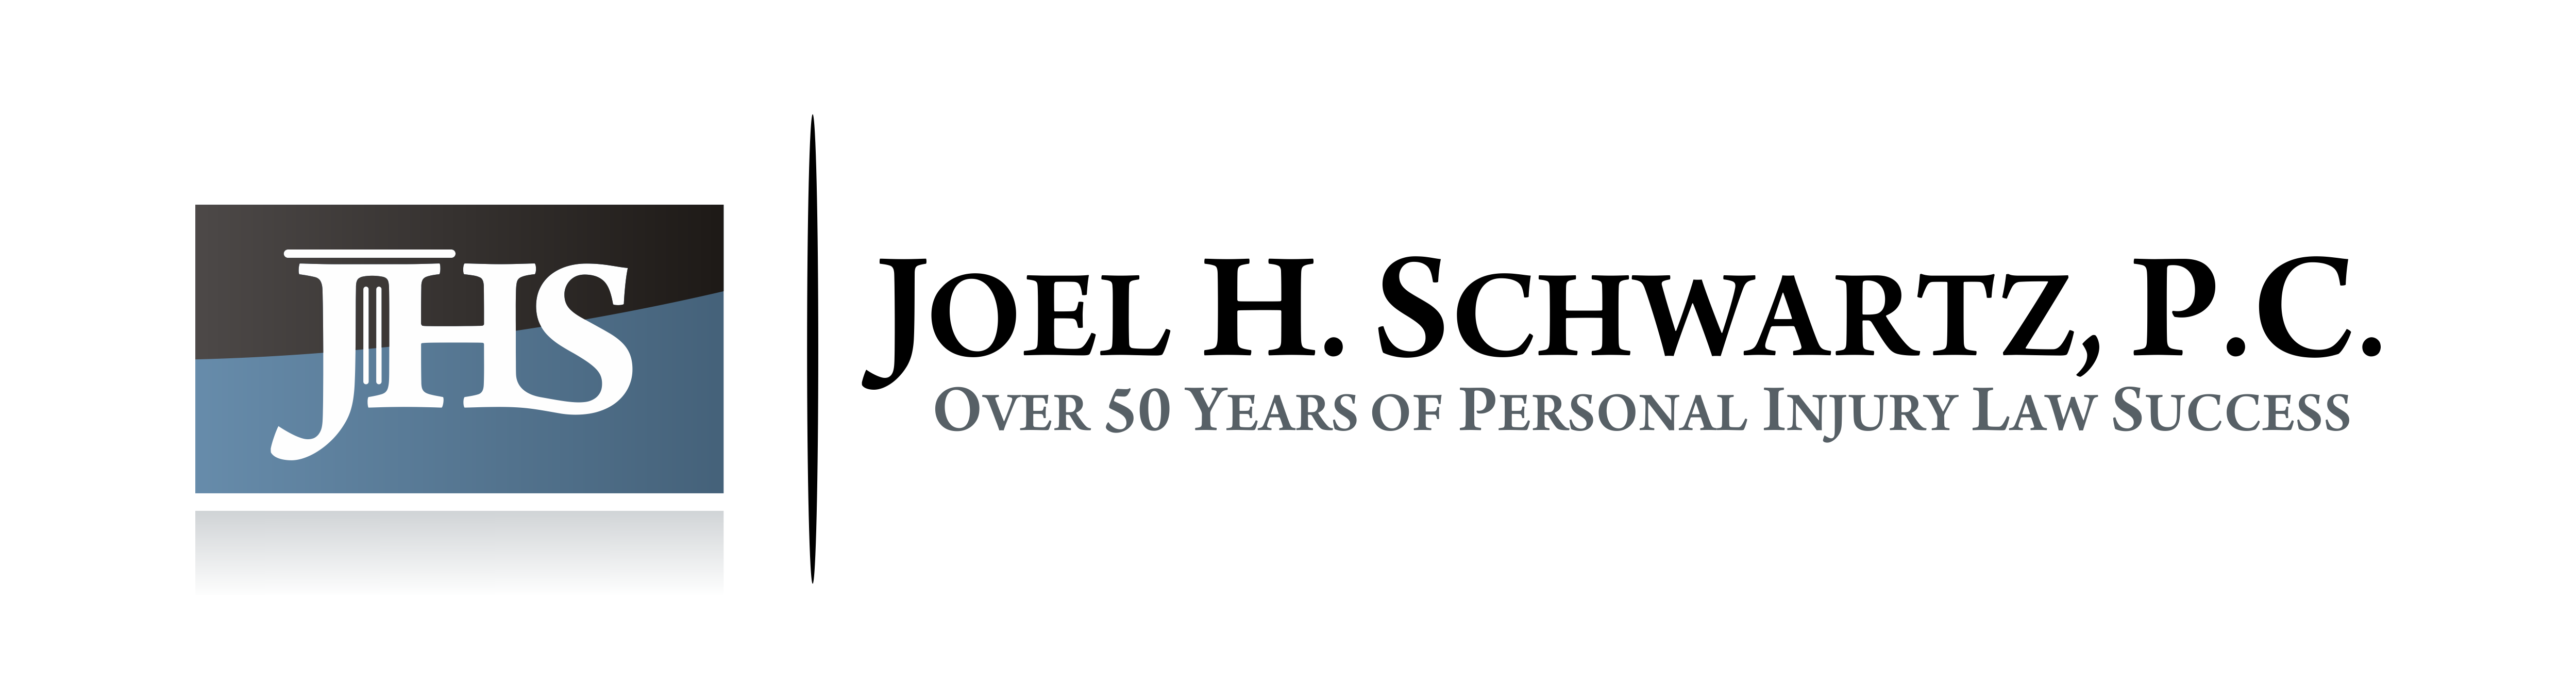 Joel H. Schwartz, P.C. Comprises a Personal Injury Attorney in Framingham, MA, Representing Clients in Personal Injury Cases and More